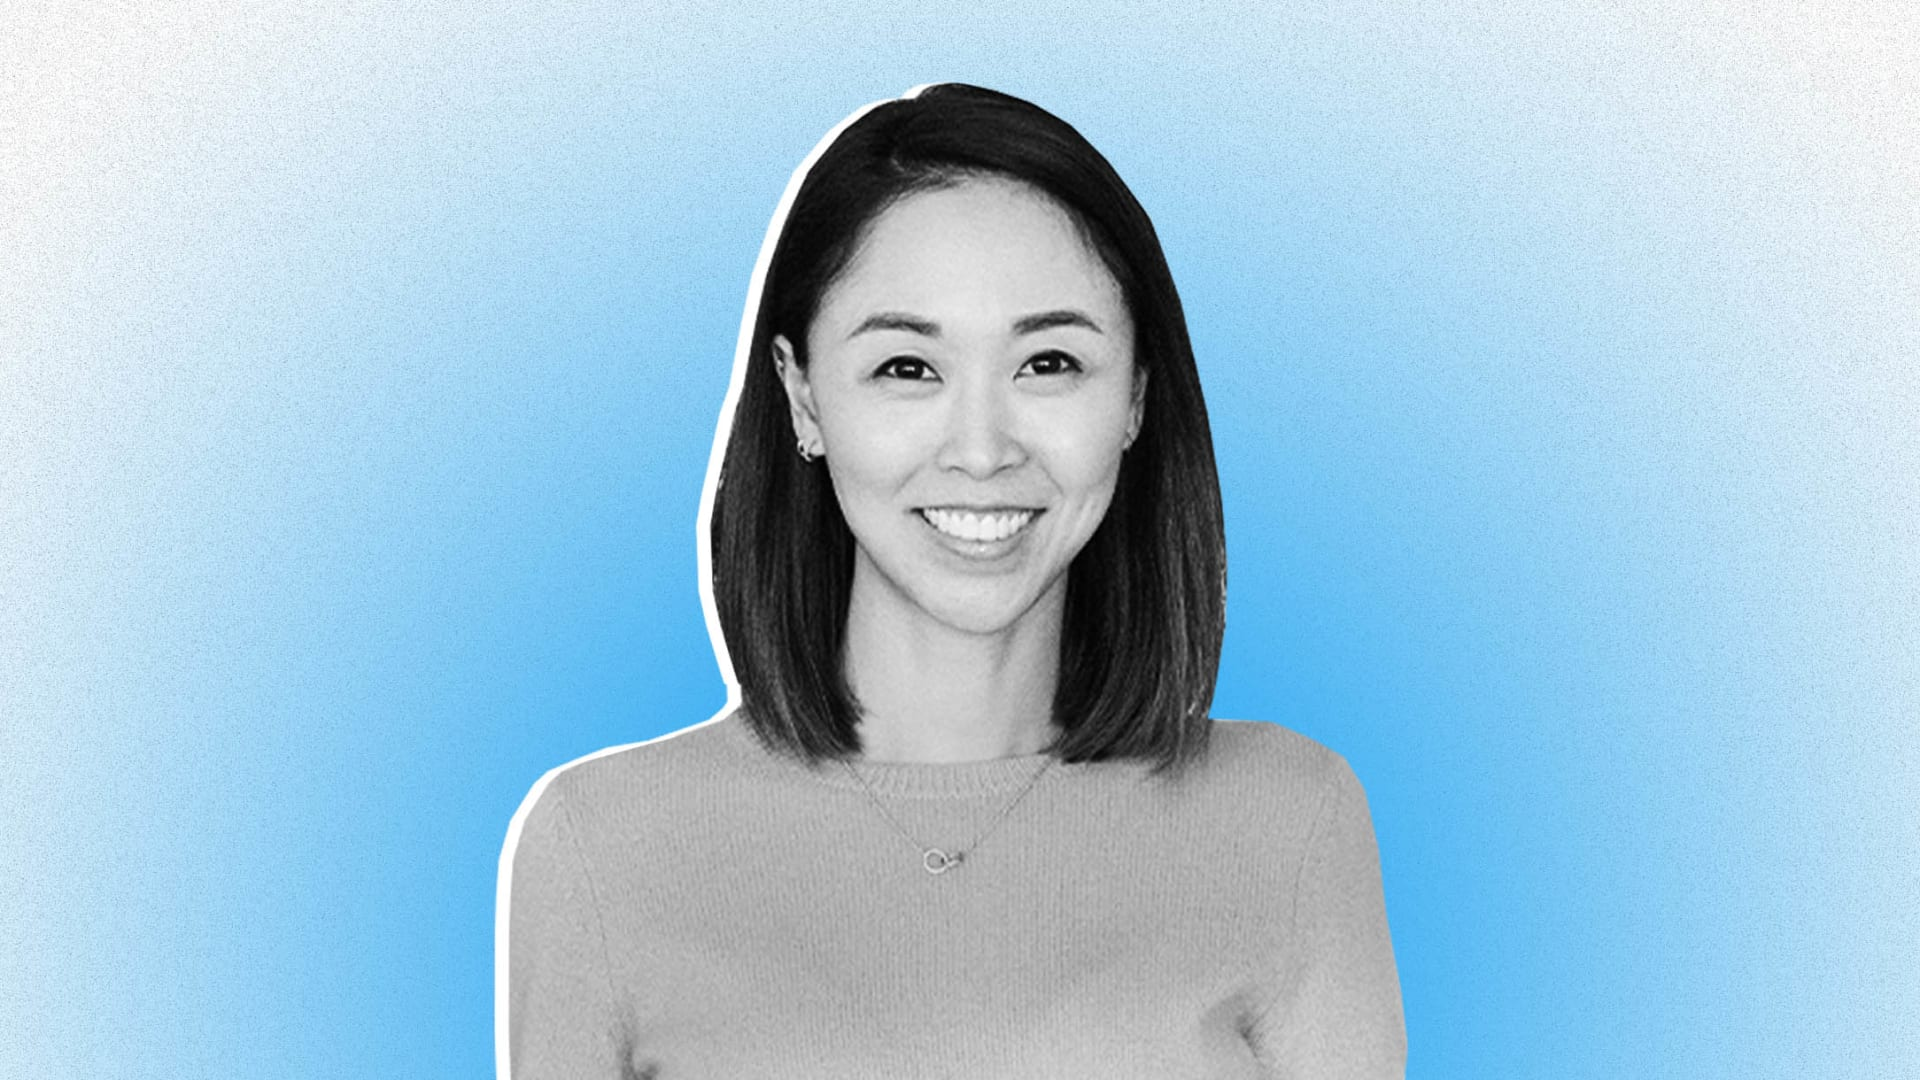 Sign Up Now: Meet Blueland Co-founder and CEO Sarah Paiji Yoo in This Exclusive Inc. Stream Event Today